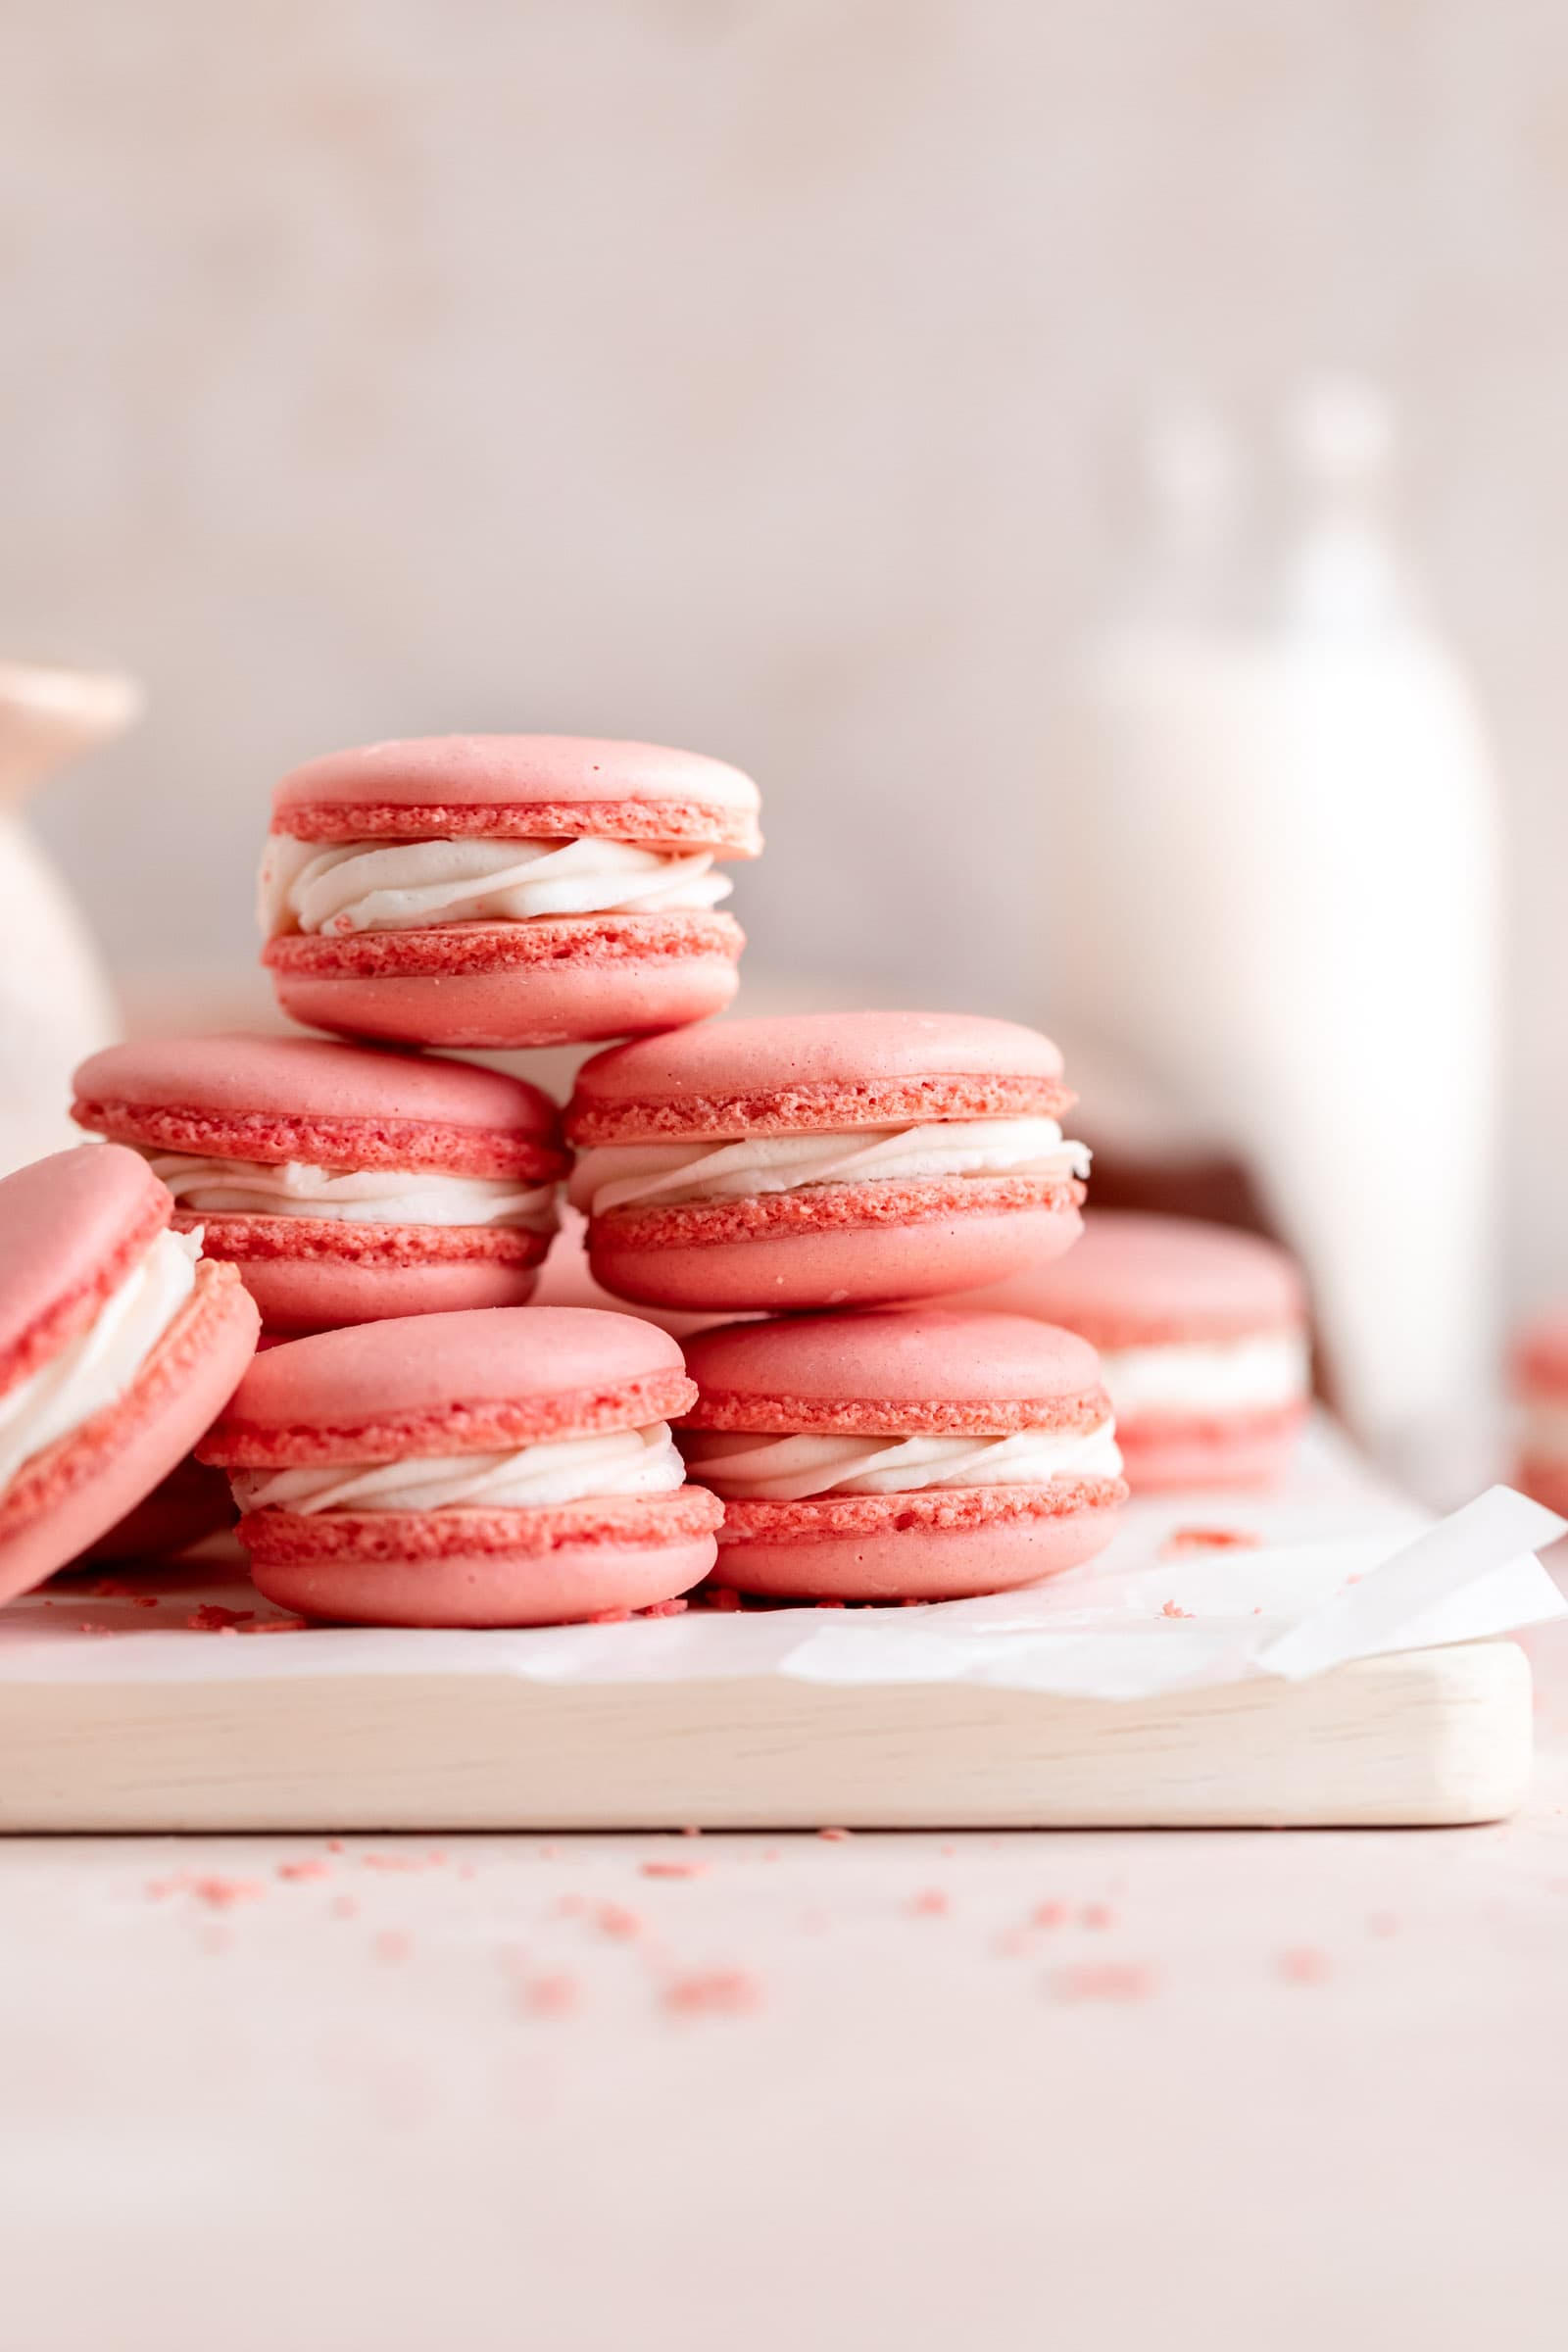 Foolproof Macaron Recipe Step By Step How To Make French Macarons Broma Bakery